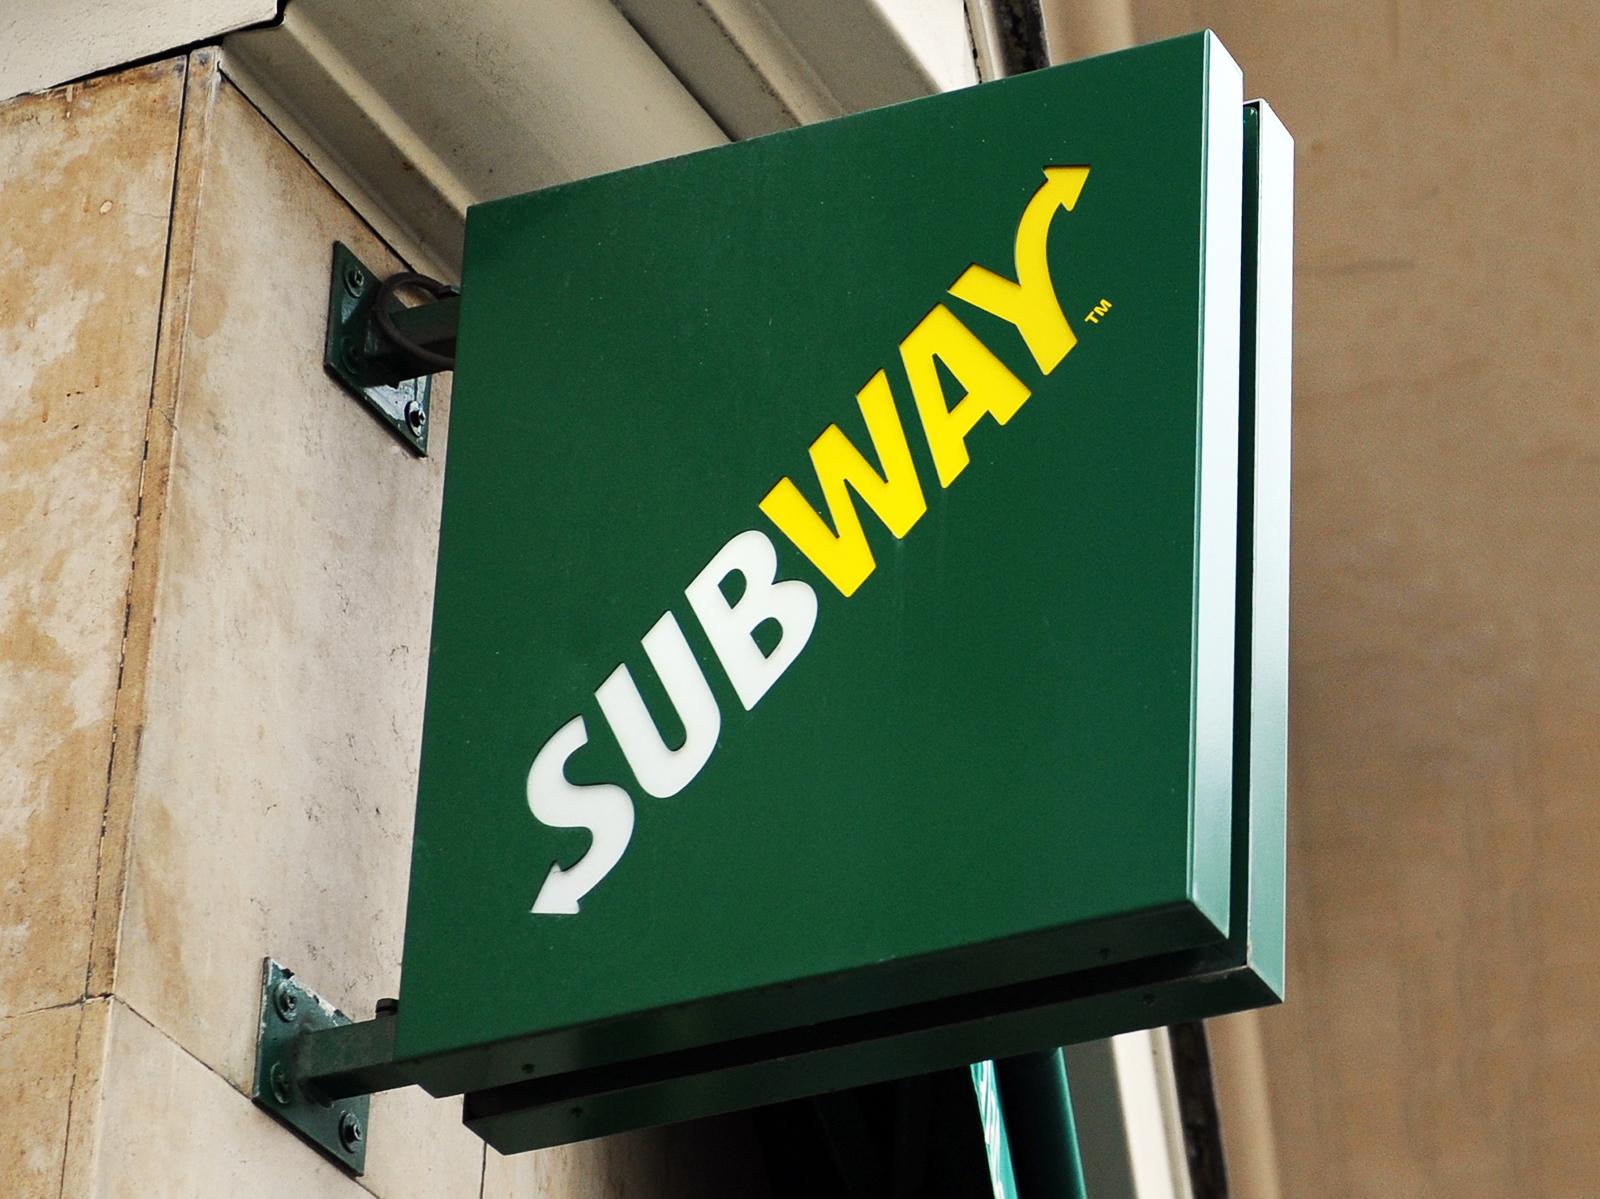 subway sandwich eat fresh chain map in new york city boroughs